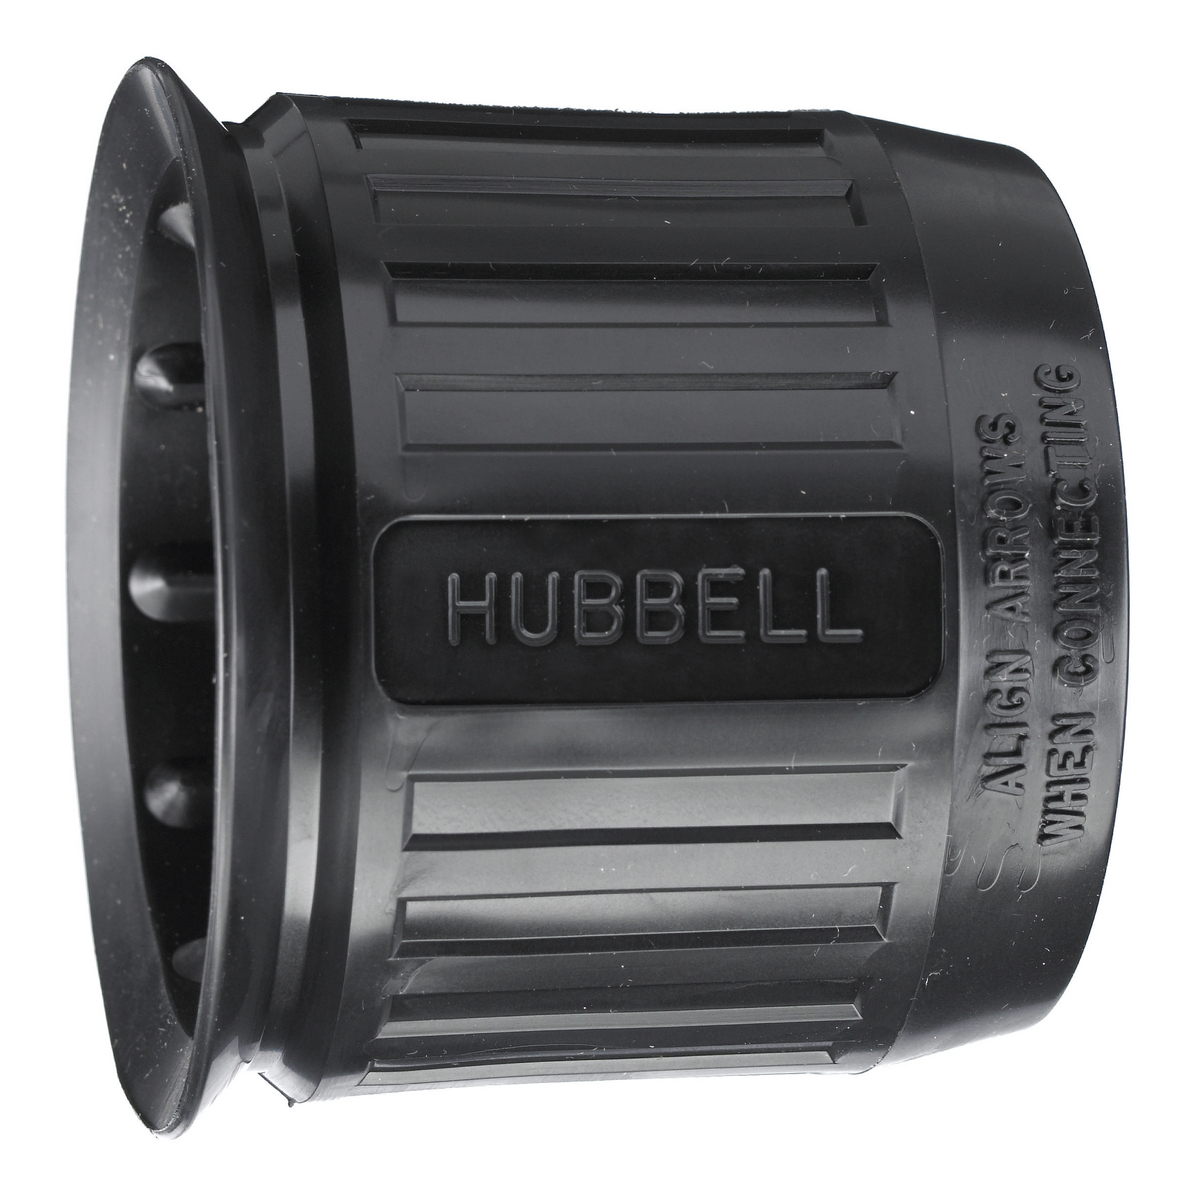 Hubbell HBL20425B w/PROOF BOOT FOR 30A HUBBELLOCK, LONG